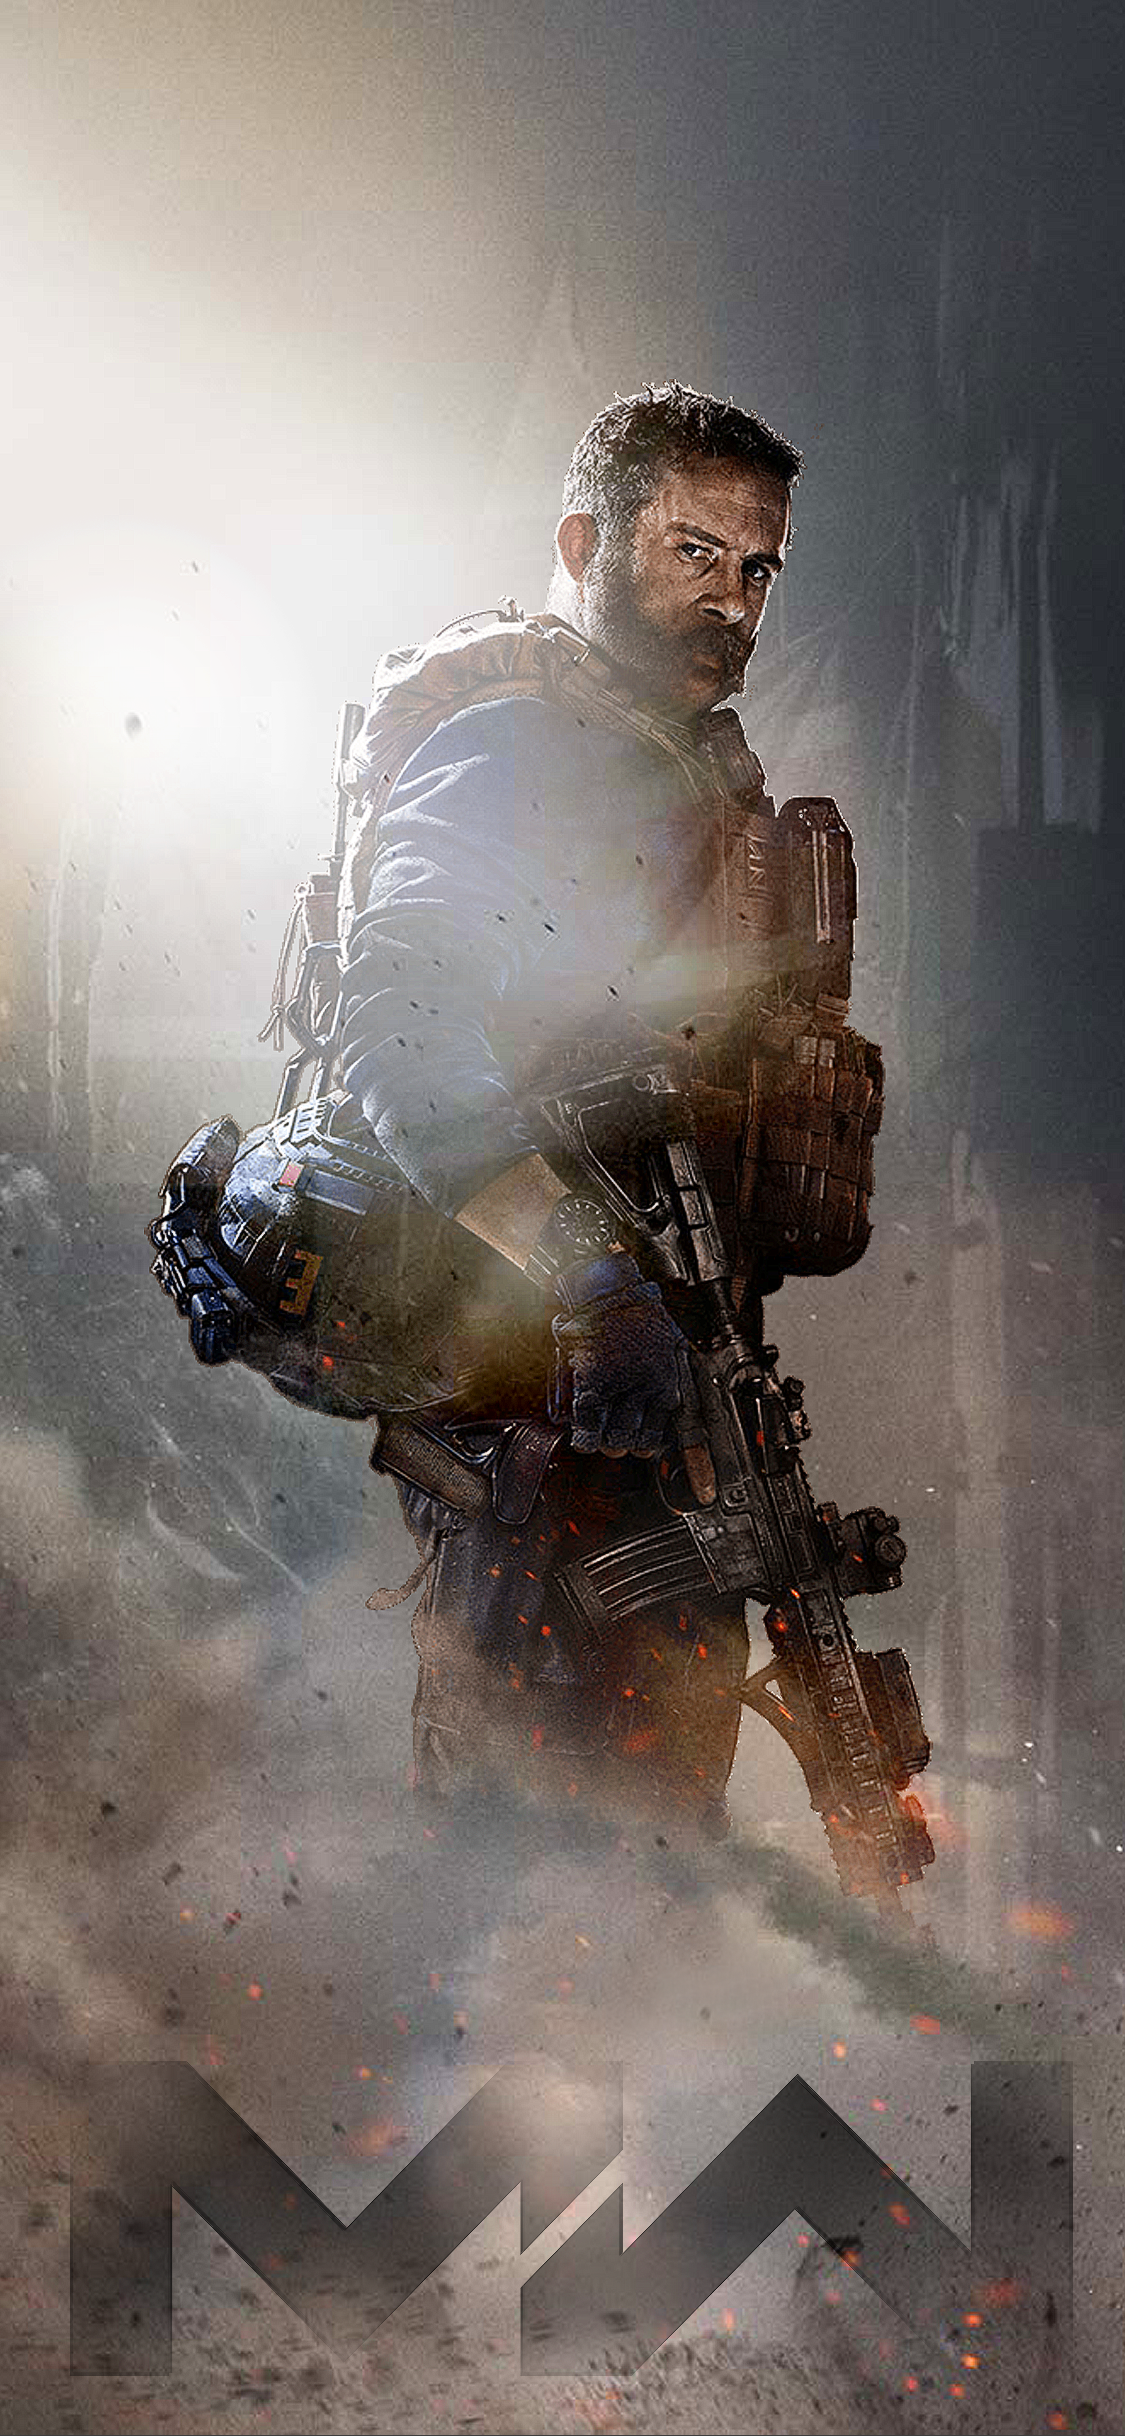 call of duty warzone wallpaper iphone